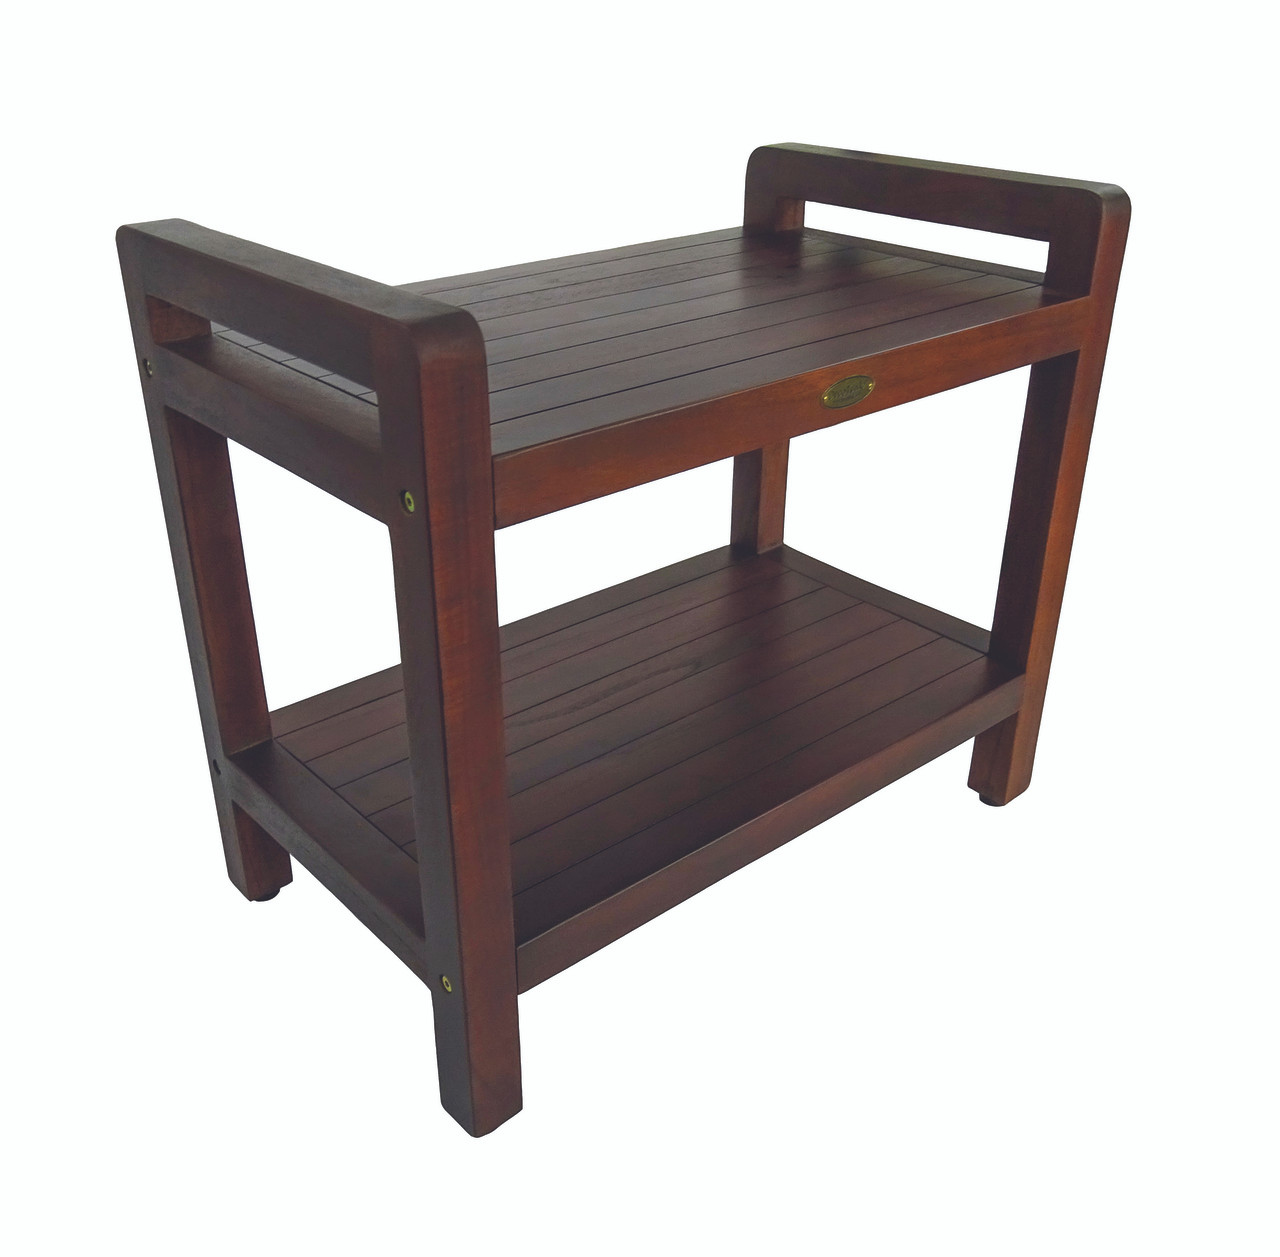 Eleganto 24 Inch Teak Shower Bench With Shelf And Liftaide Arms